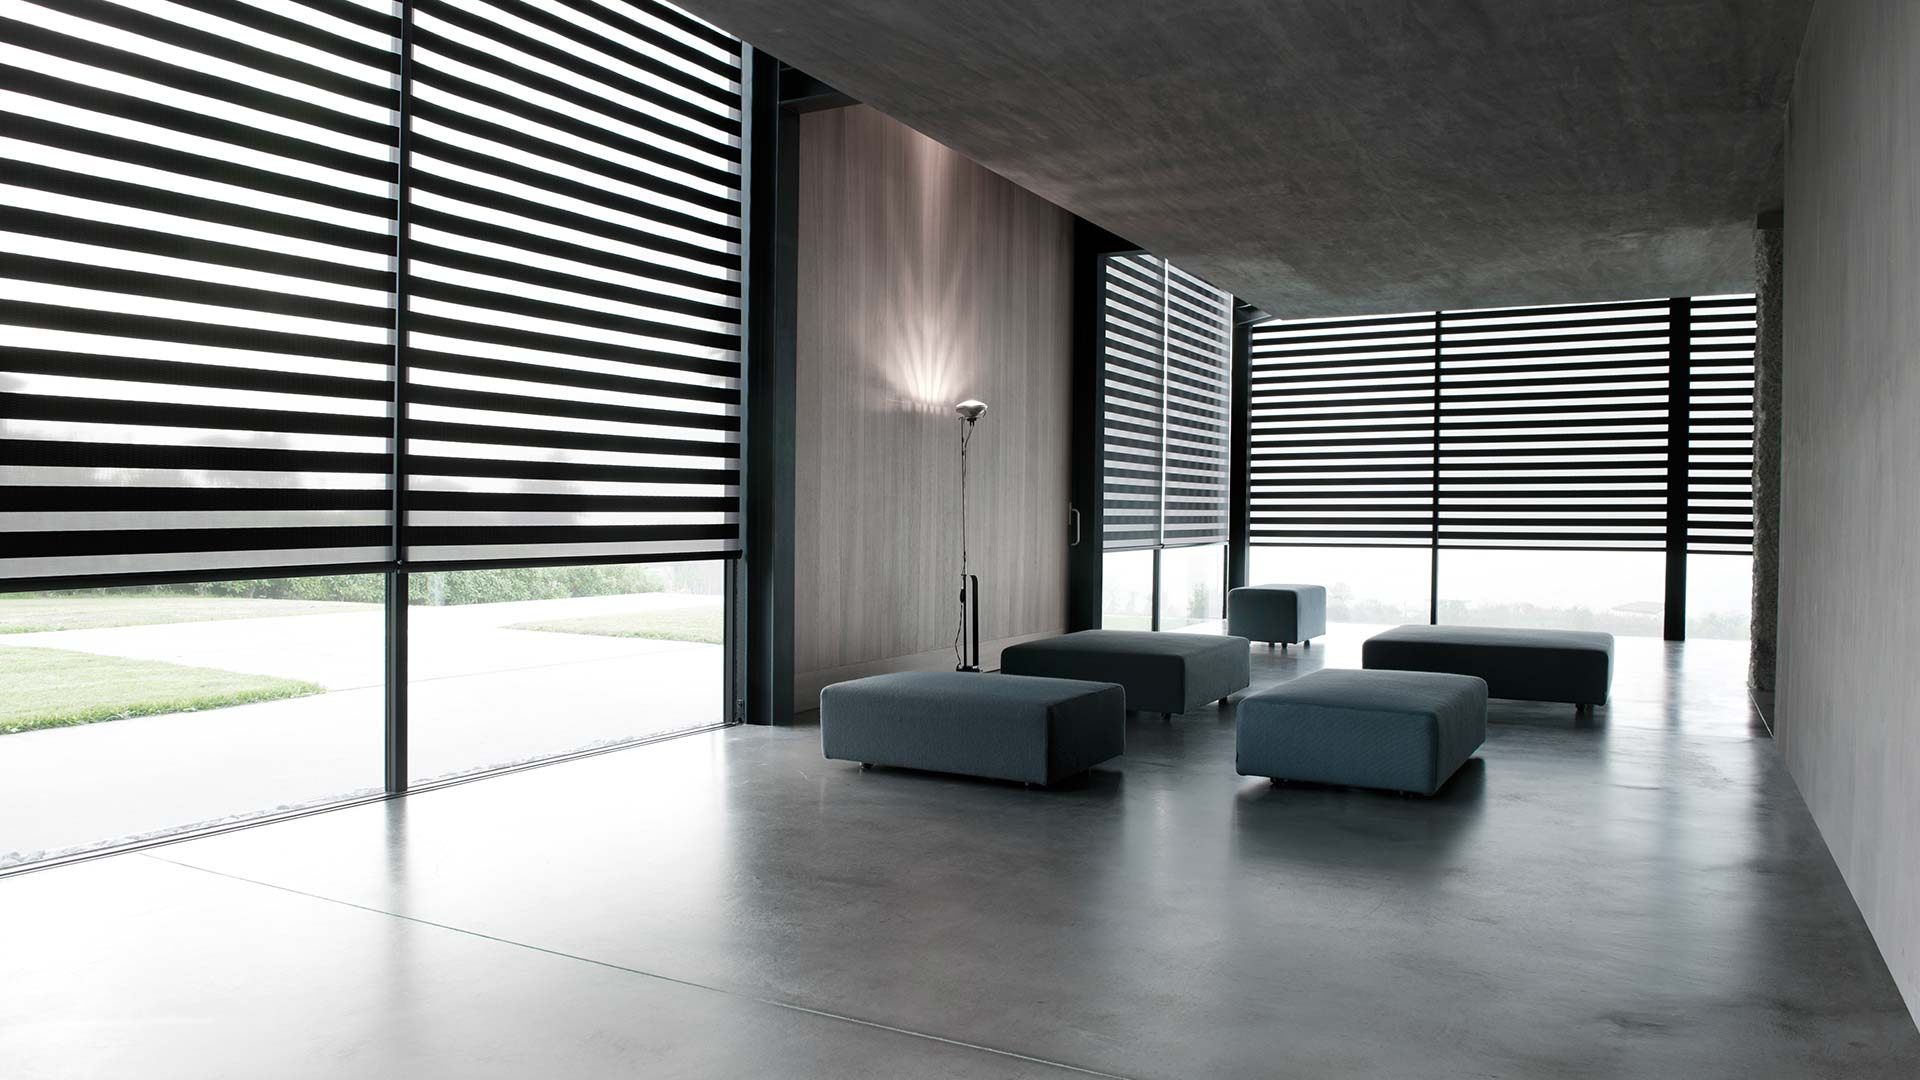 Double Roller Coulisse With Regard To Luxury Roman Blinds (Image 6 of 15)